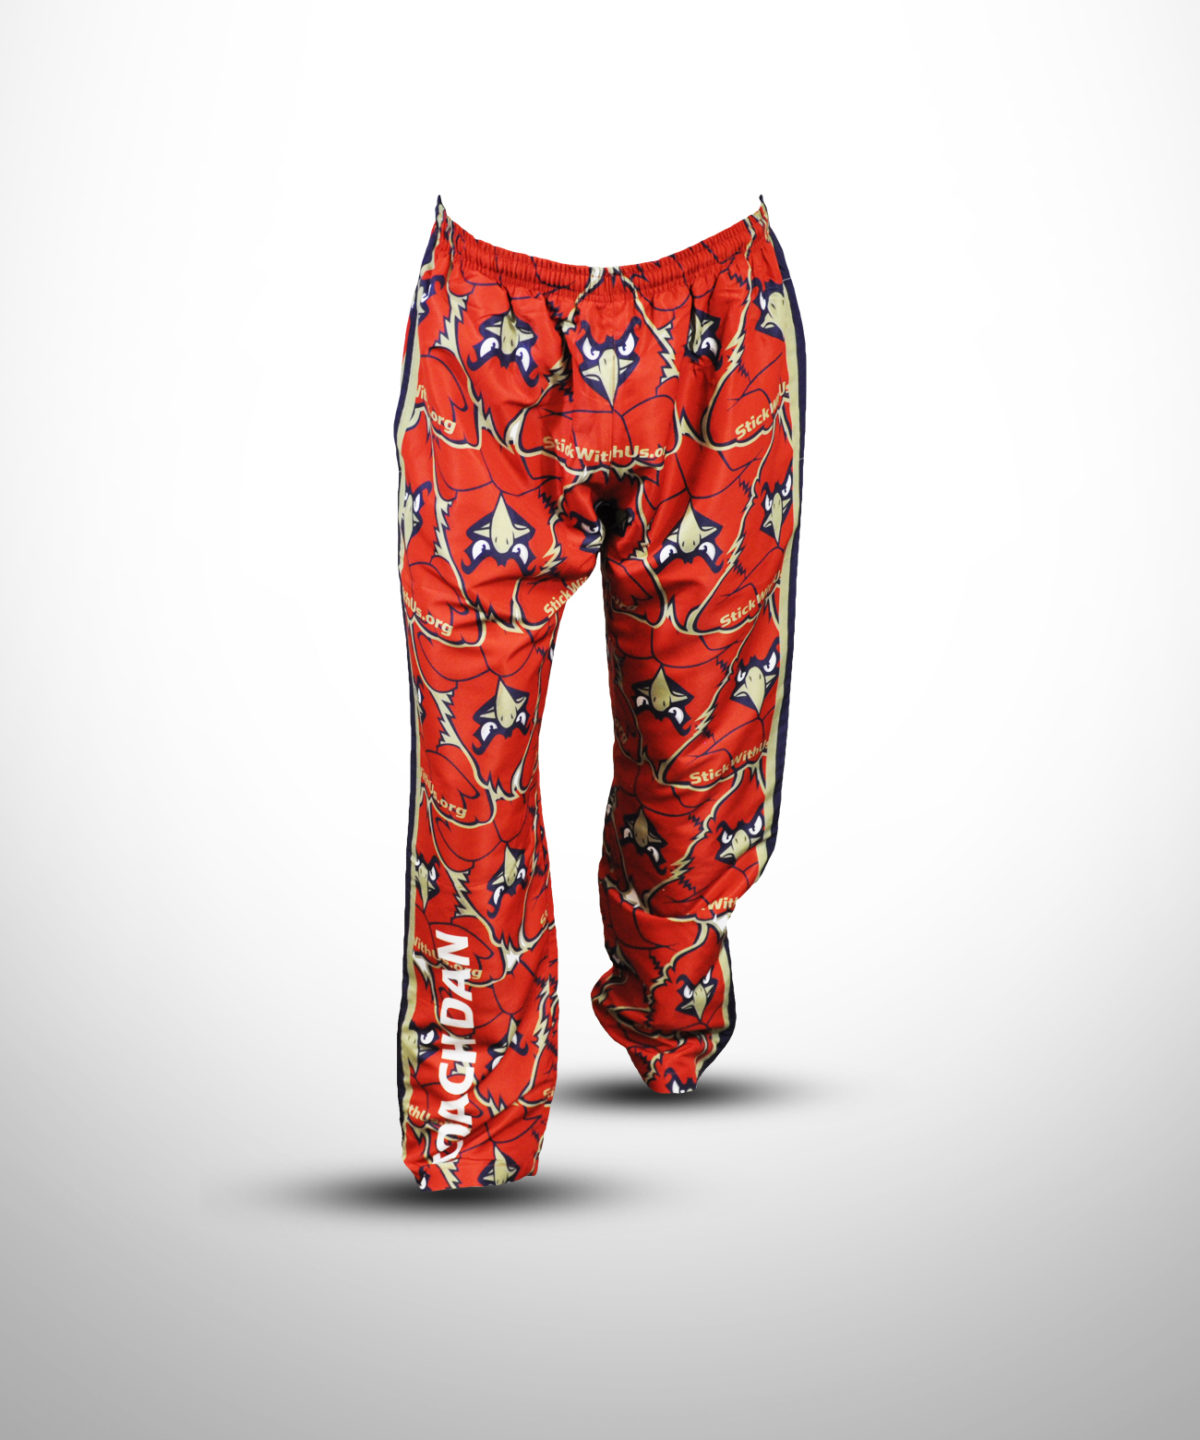 Full Dye Sublimated Warmups Pants – Adult